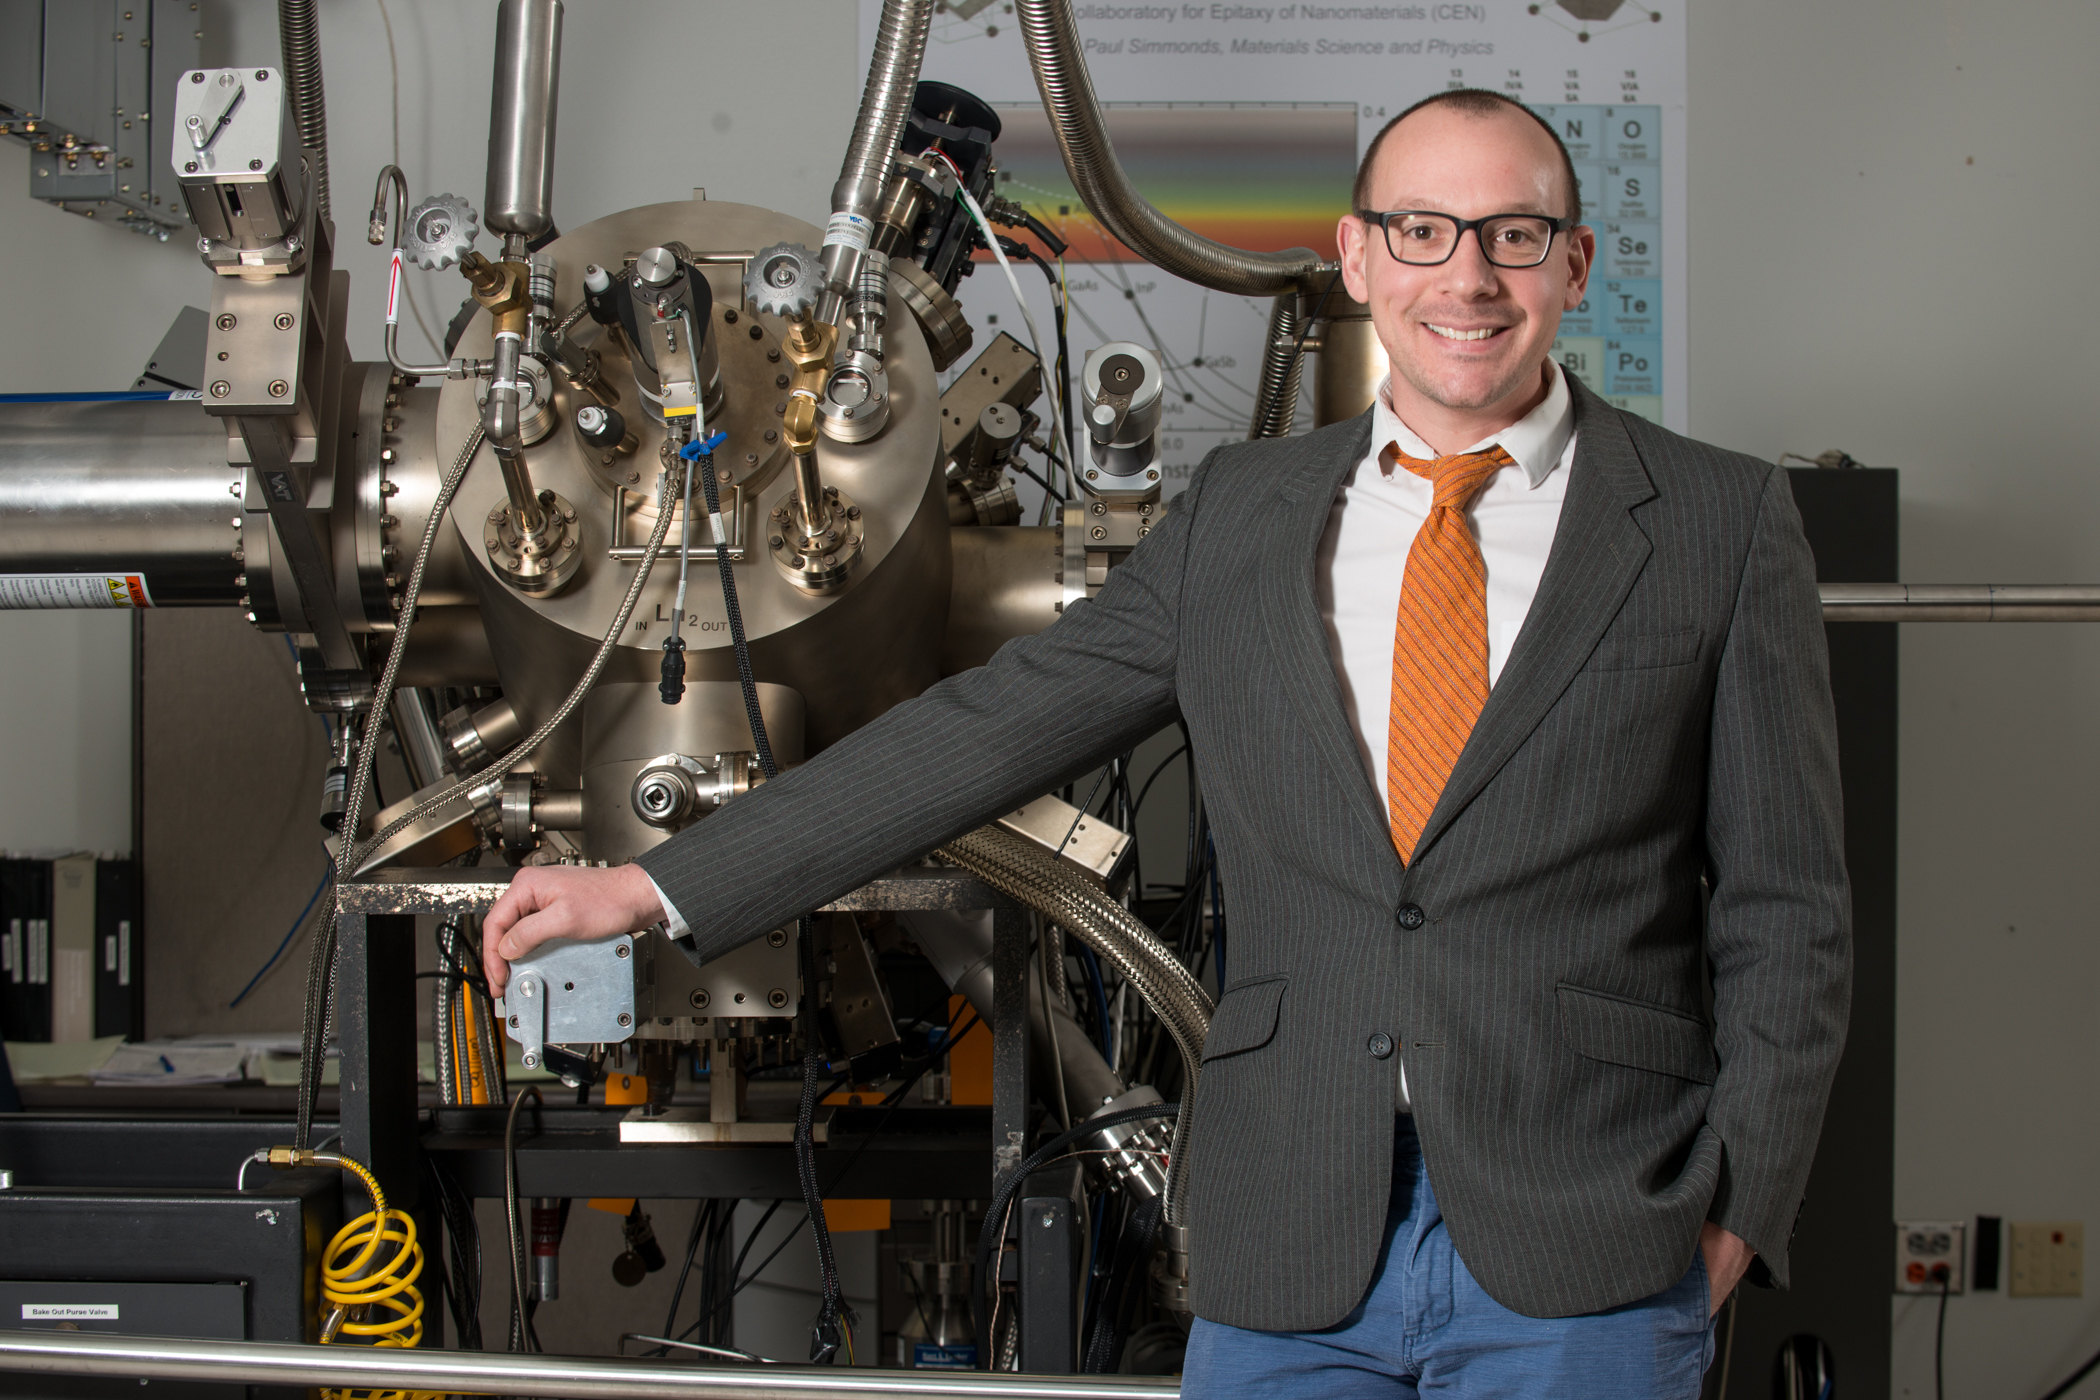 Photo of Simonds standing in front of Molecular Beam Epitaxy apparatus